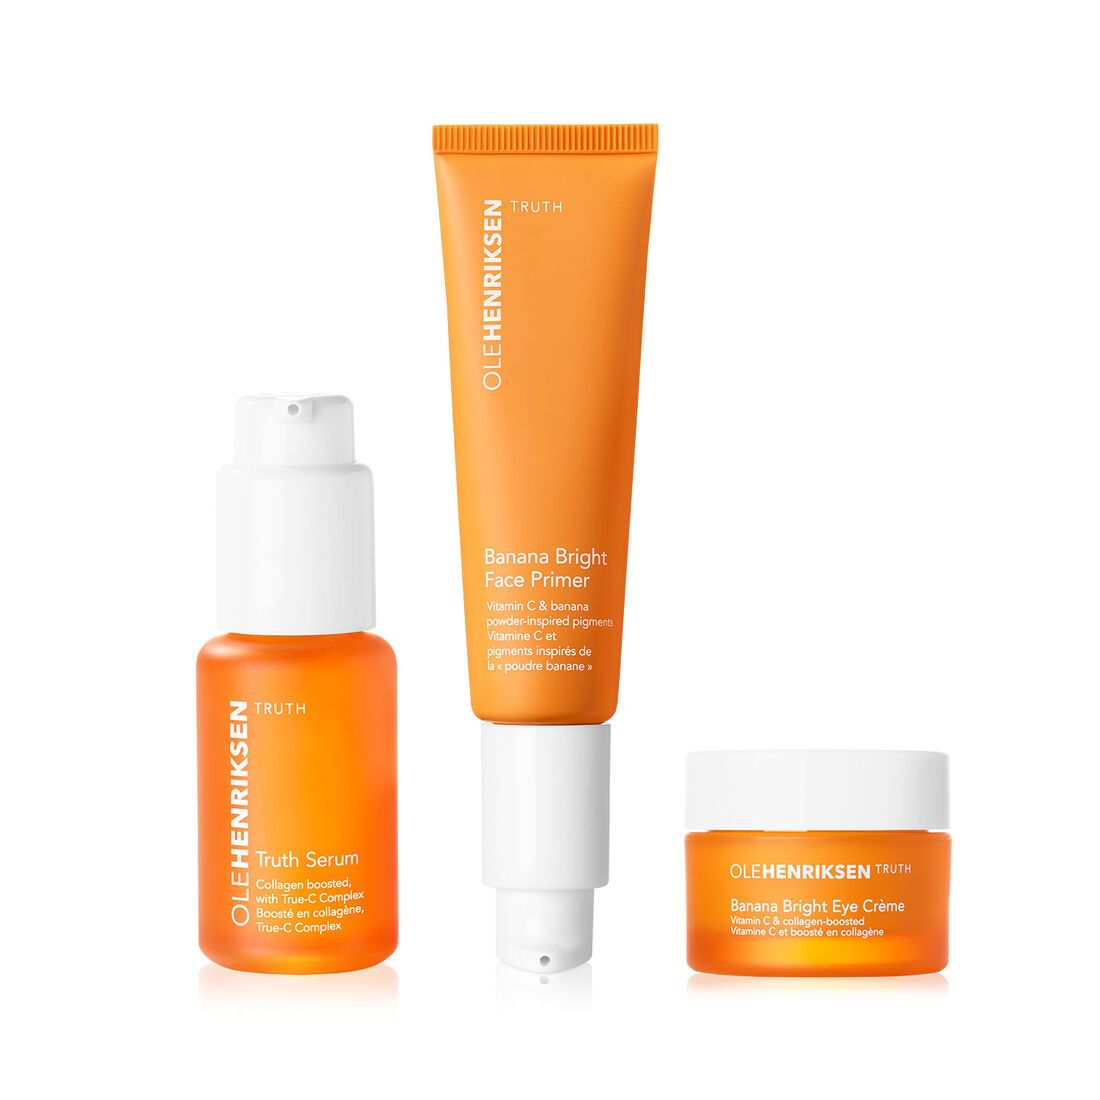 Ole Henriksen Summer Glow Essentials Set Eye Creme Brightening Skincare Skincare Set